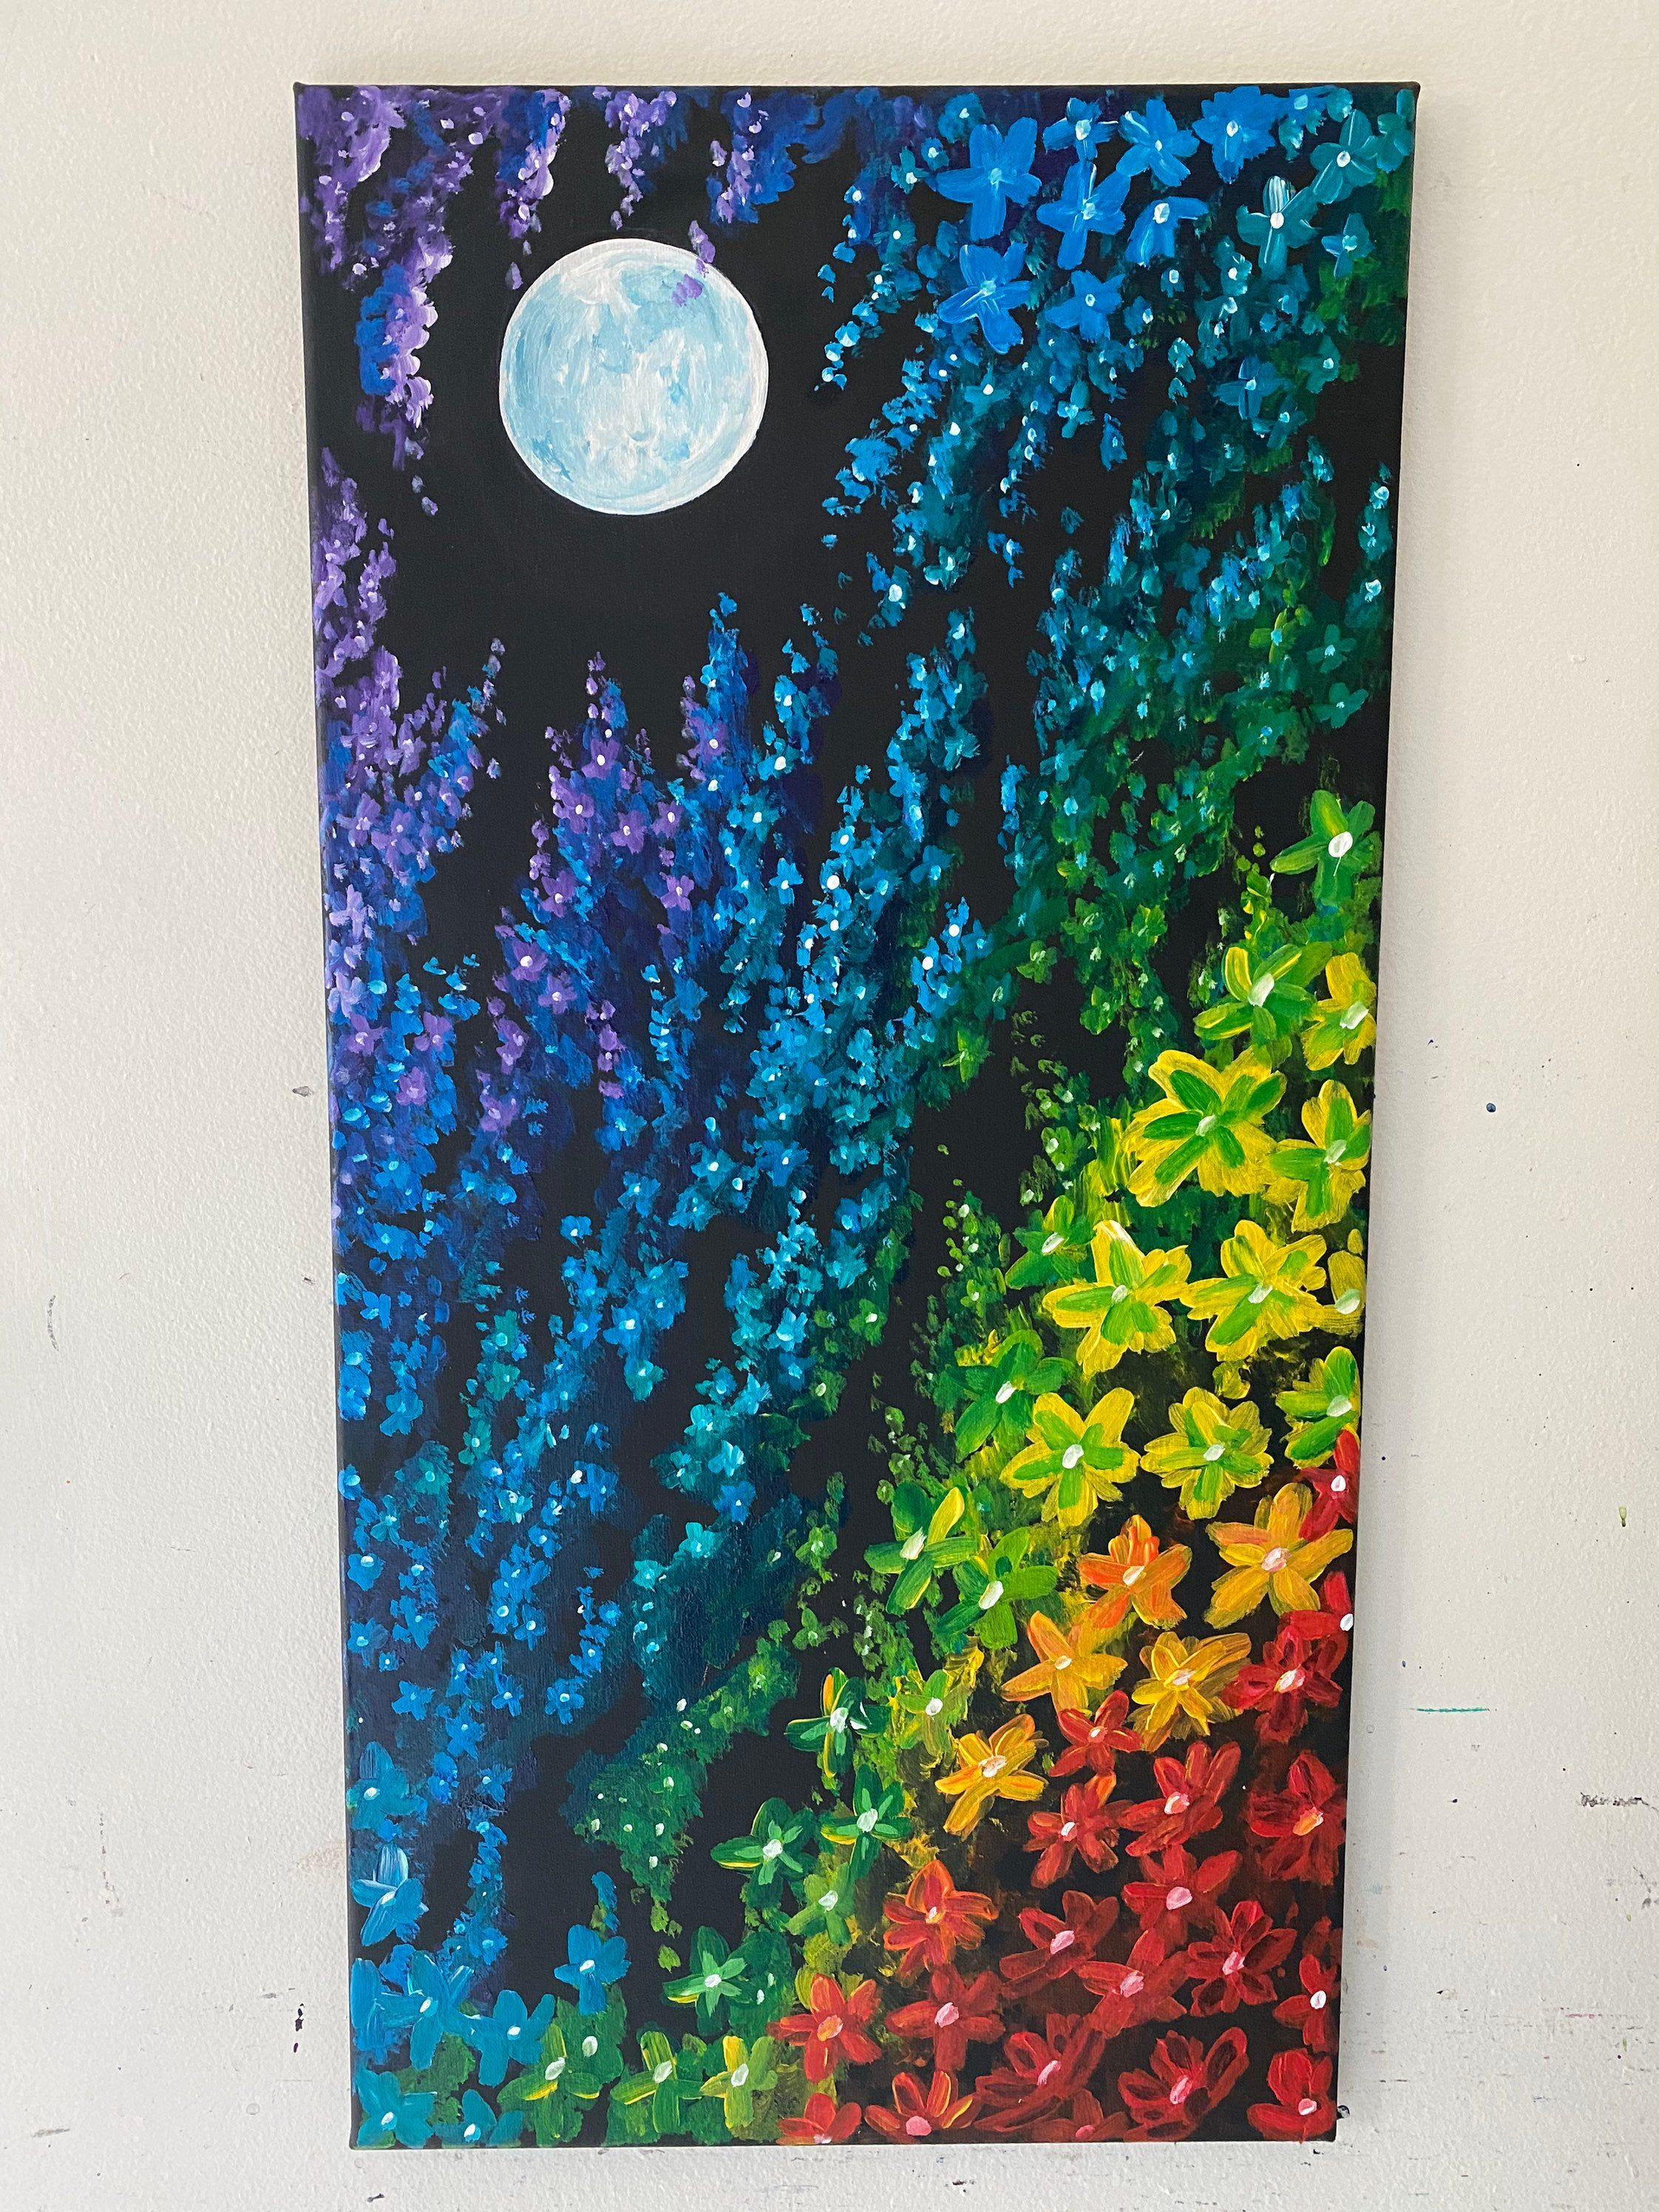 Excited to share this item from my #etsy shop: Rainbow cherry blossom tree #lgbtqpride#rainbow#rsinbowart#cherryblossomart#cherryblossompainting